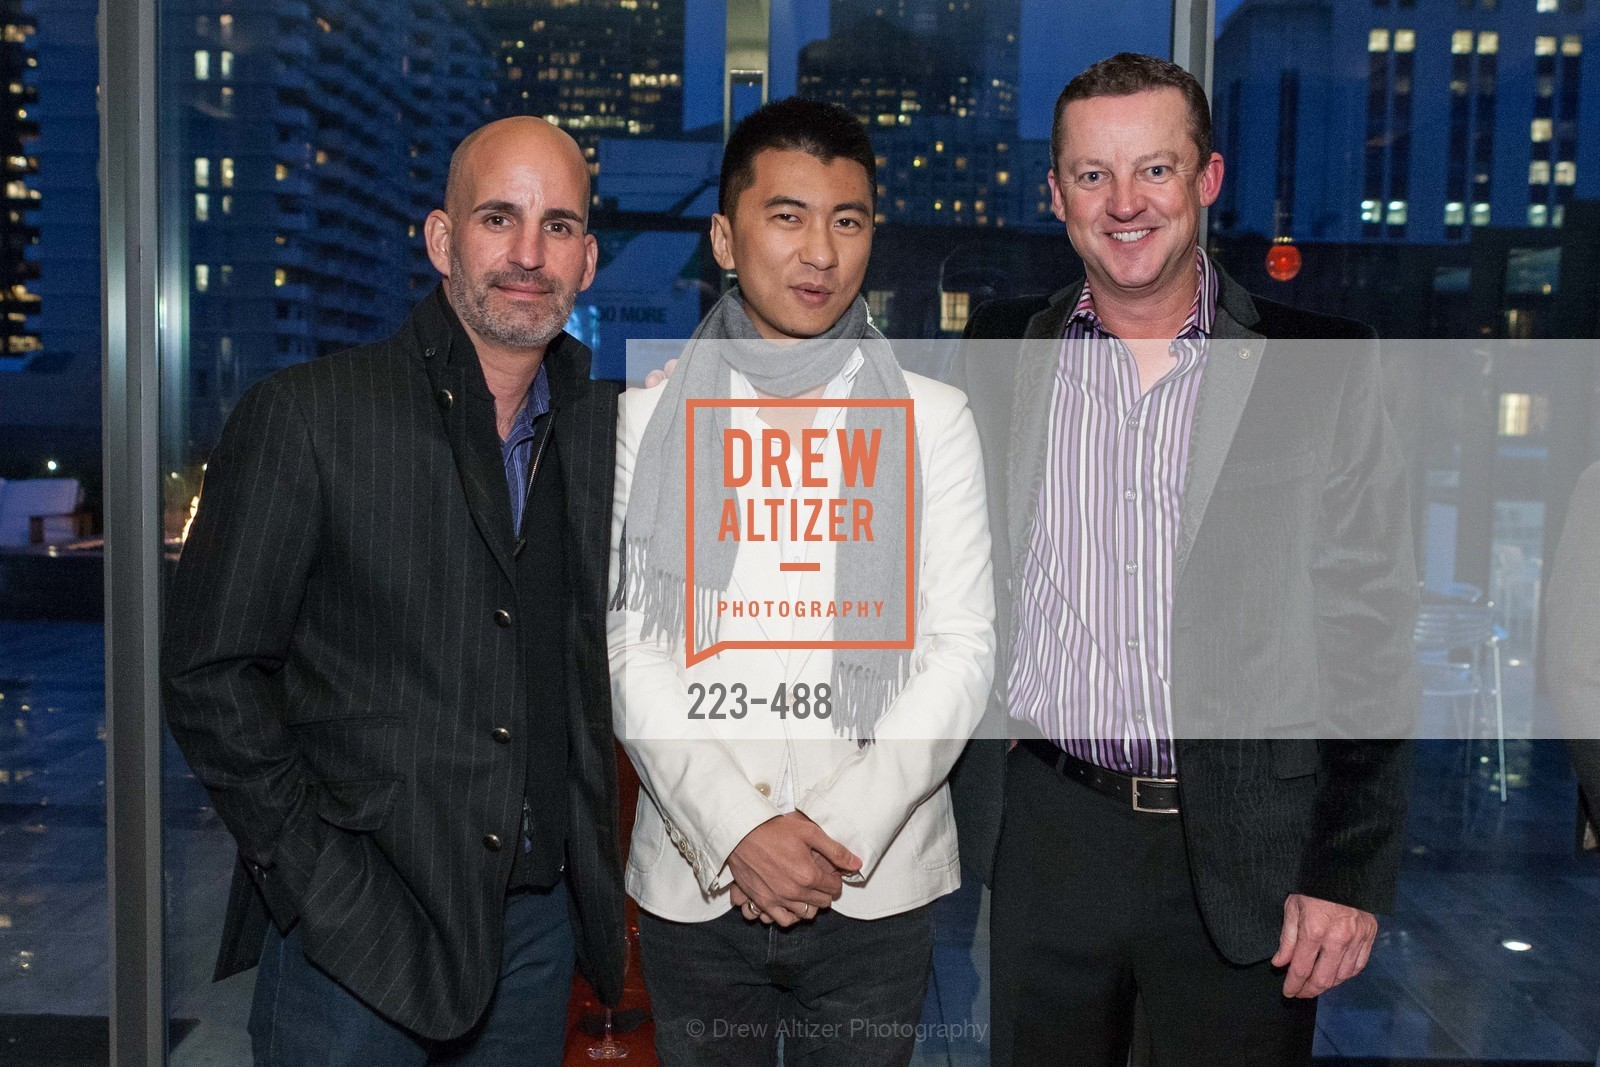 Kevin Kachuck, Thomas Liu, Greg Wardle, SONYA MOLODETSKAYA's Birthday Party, US. The Battery Penthouse, April 1st, 2014,Drew Altizer, Drew Altizer Photography, full-service event agency, private events, San Francisco photographer, photographer California